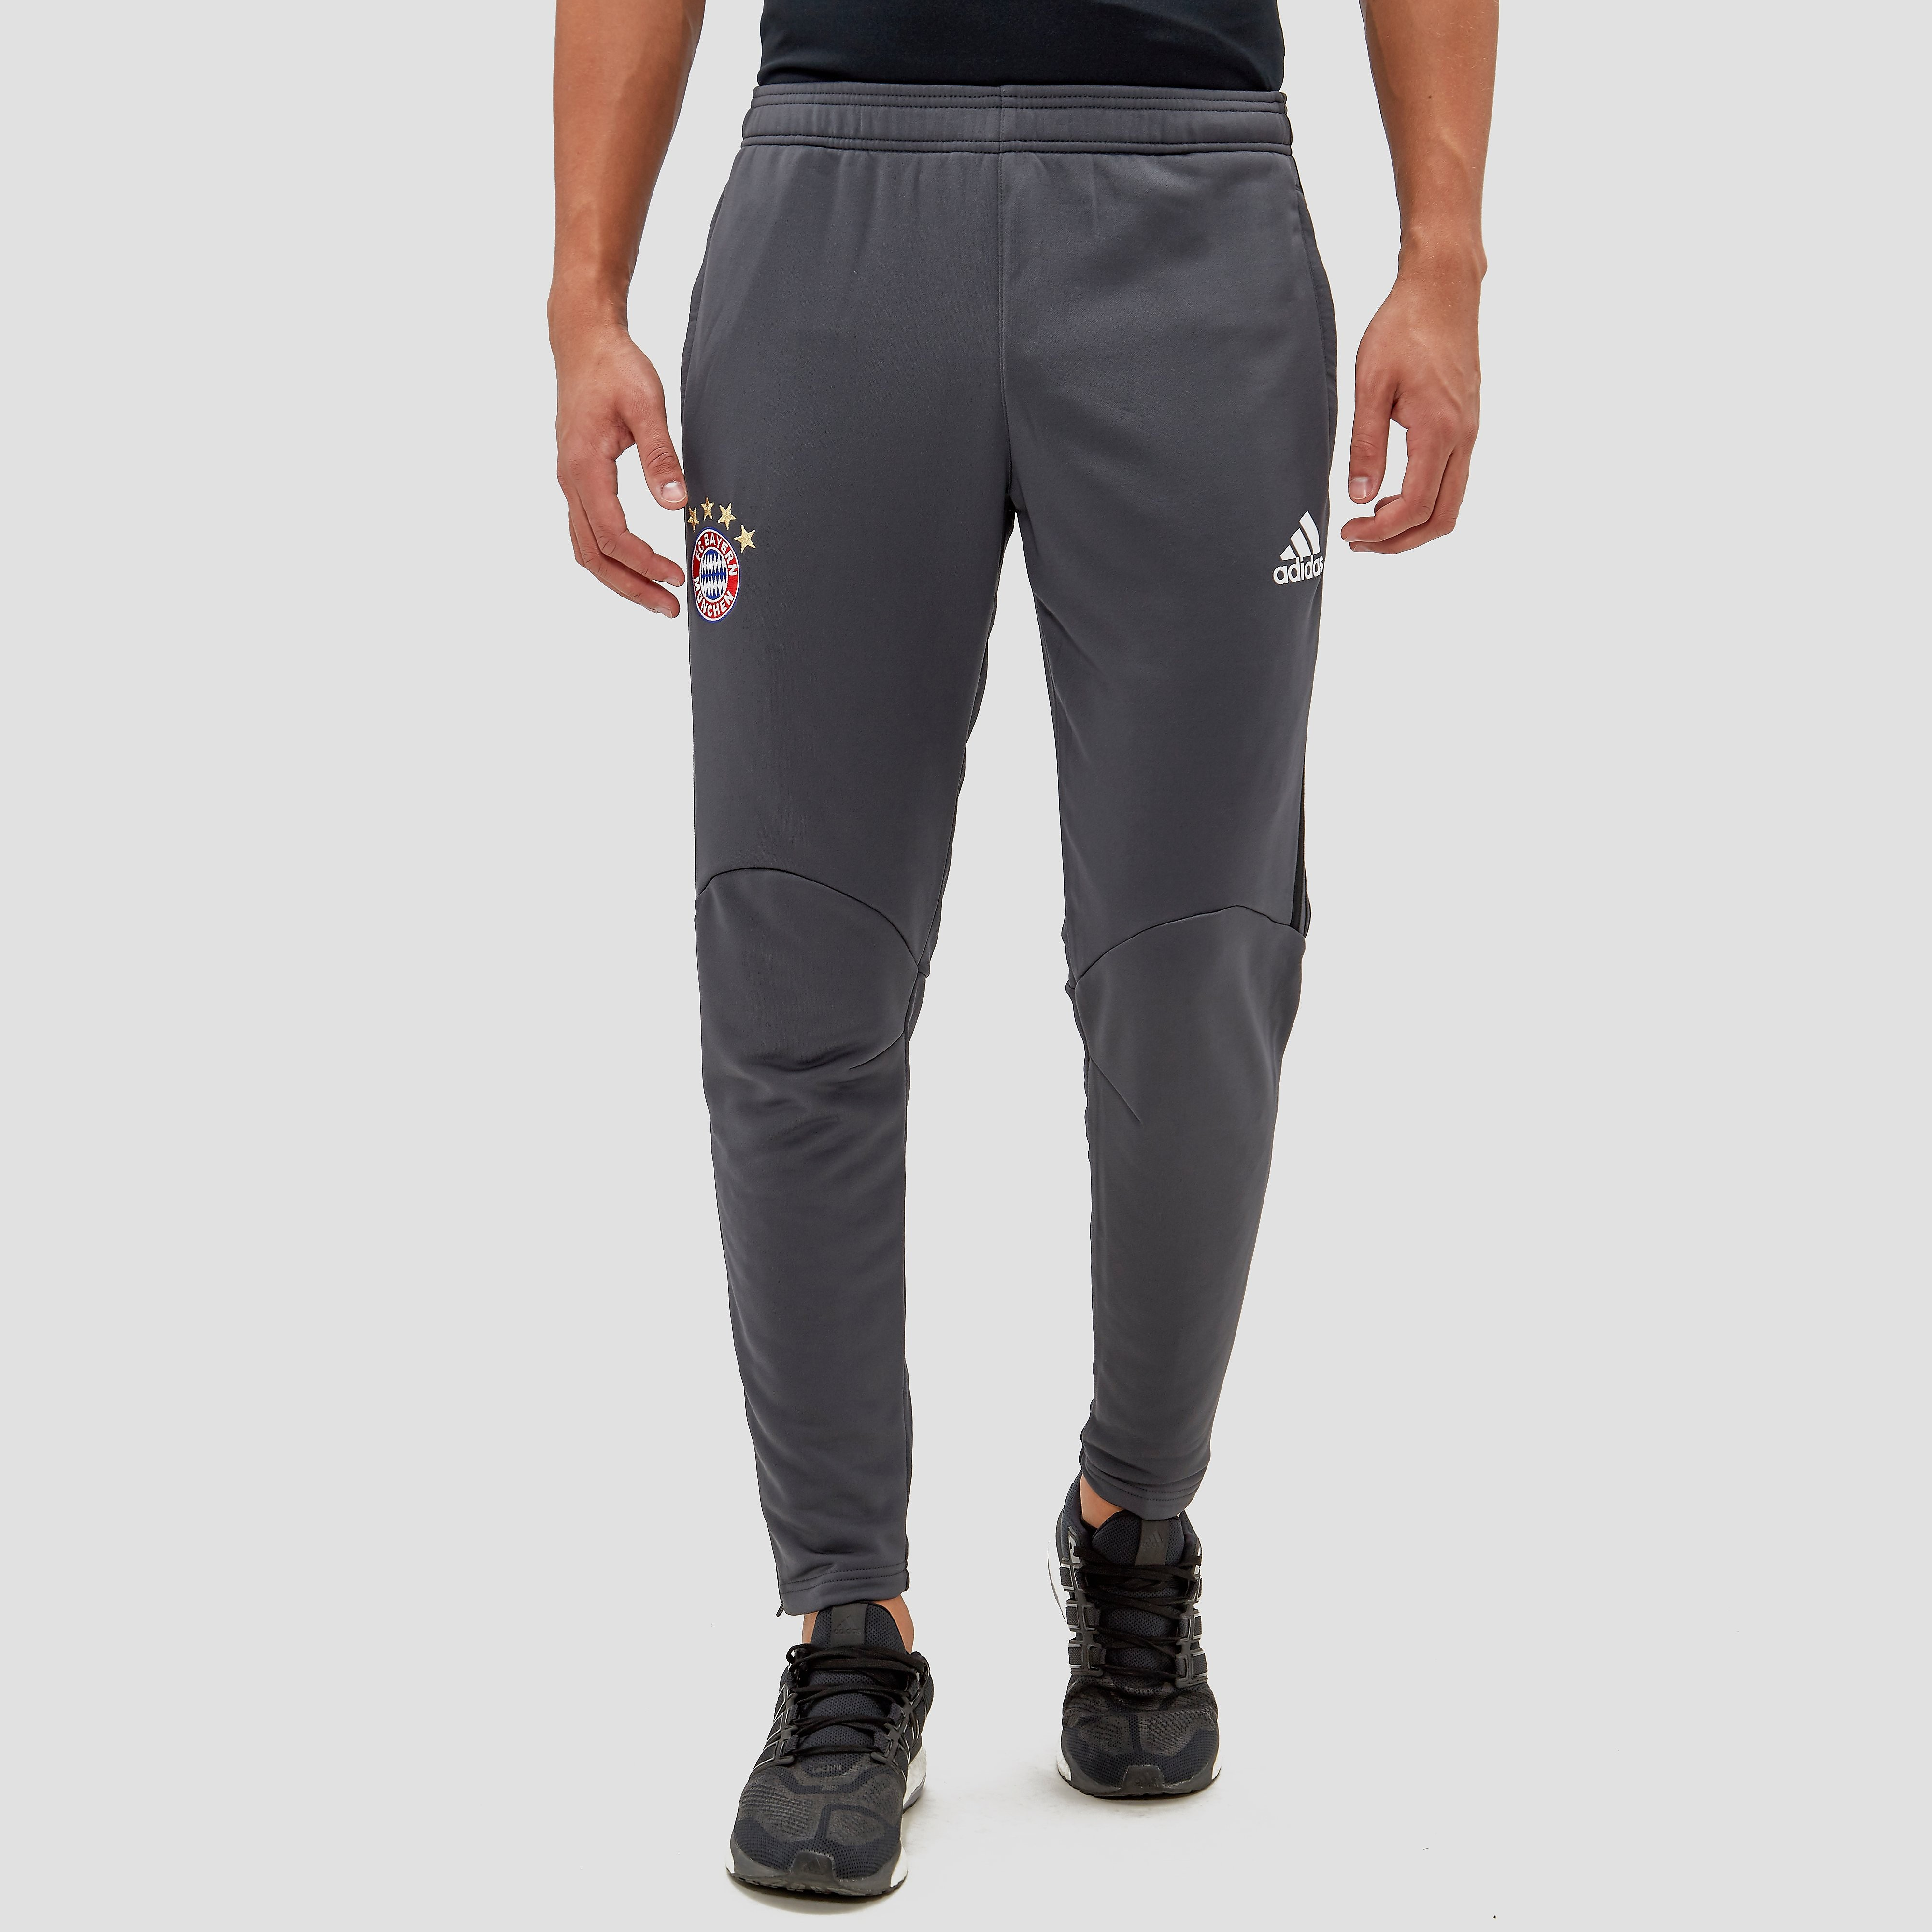 adidas EVAPP M PANT OTHER